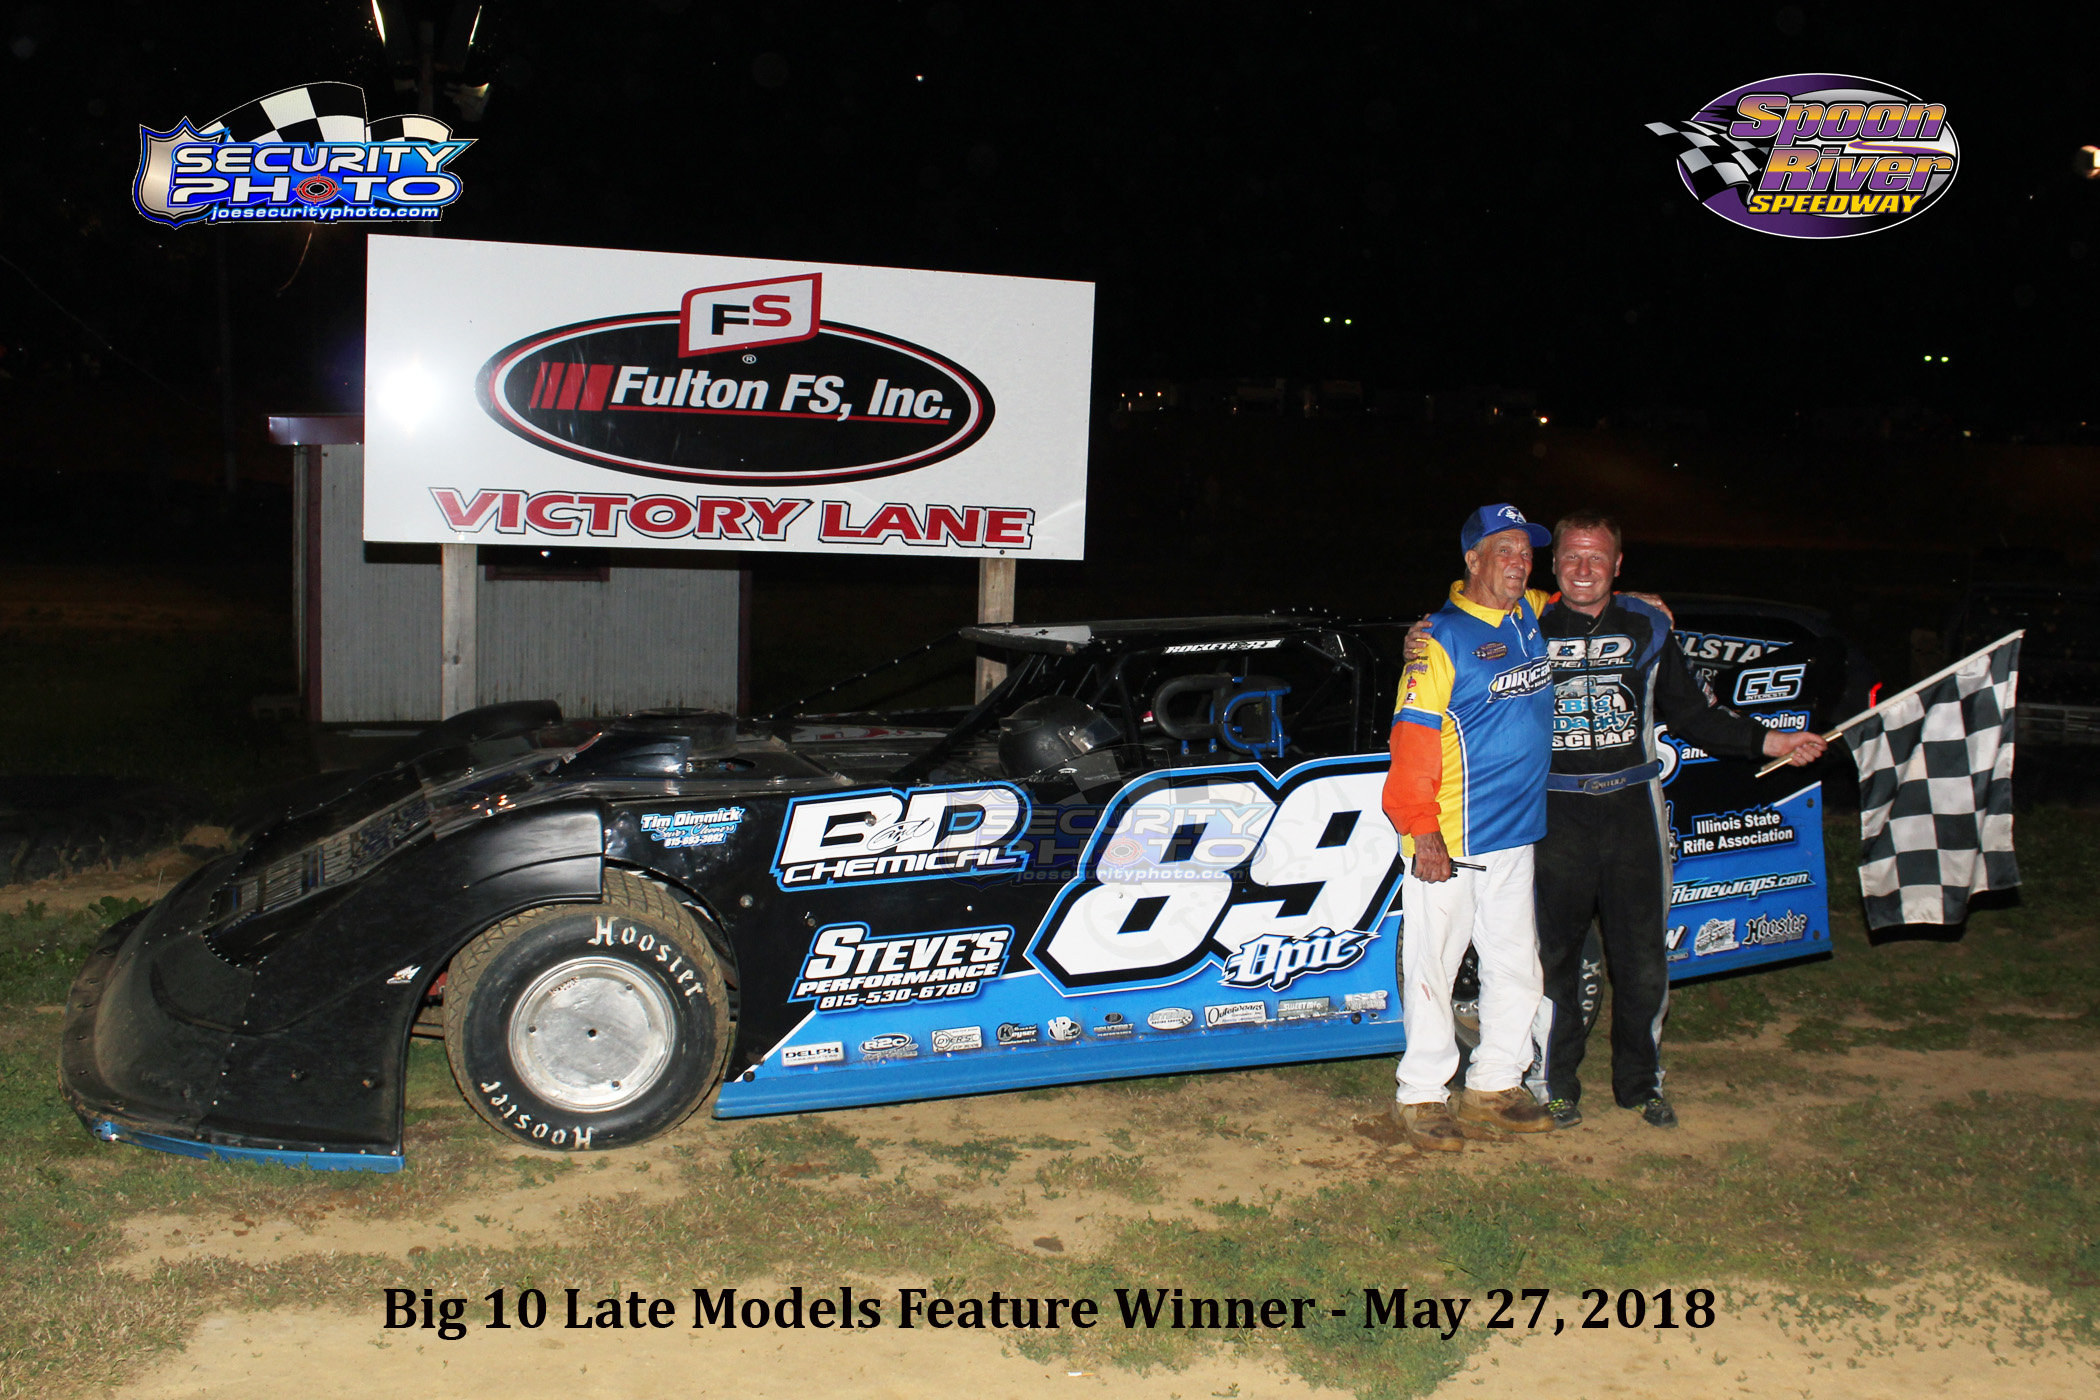 slm feature winner 5 27